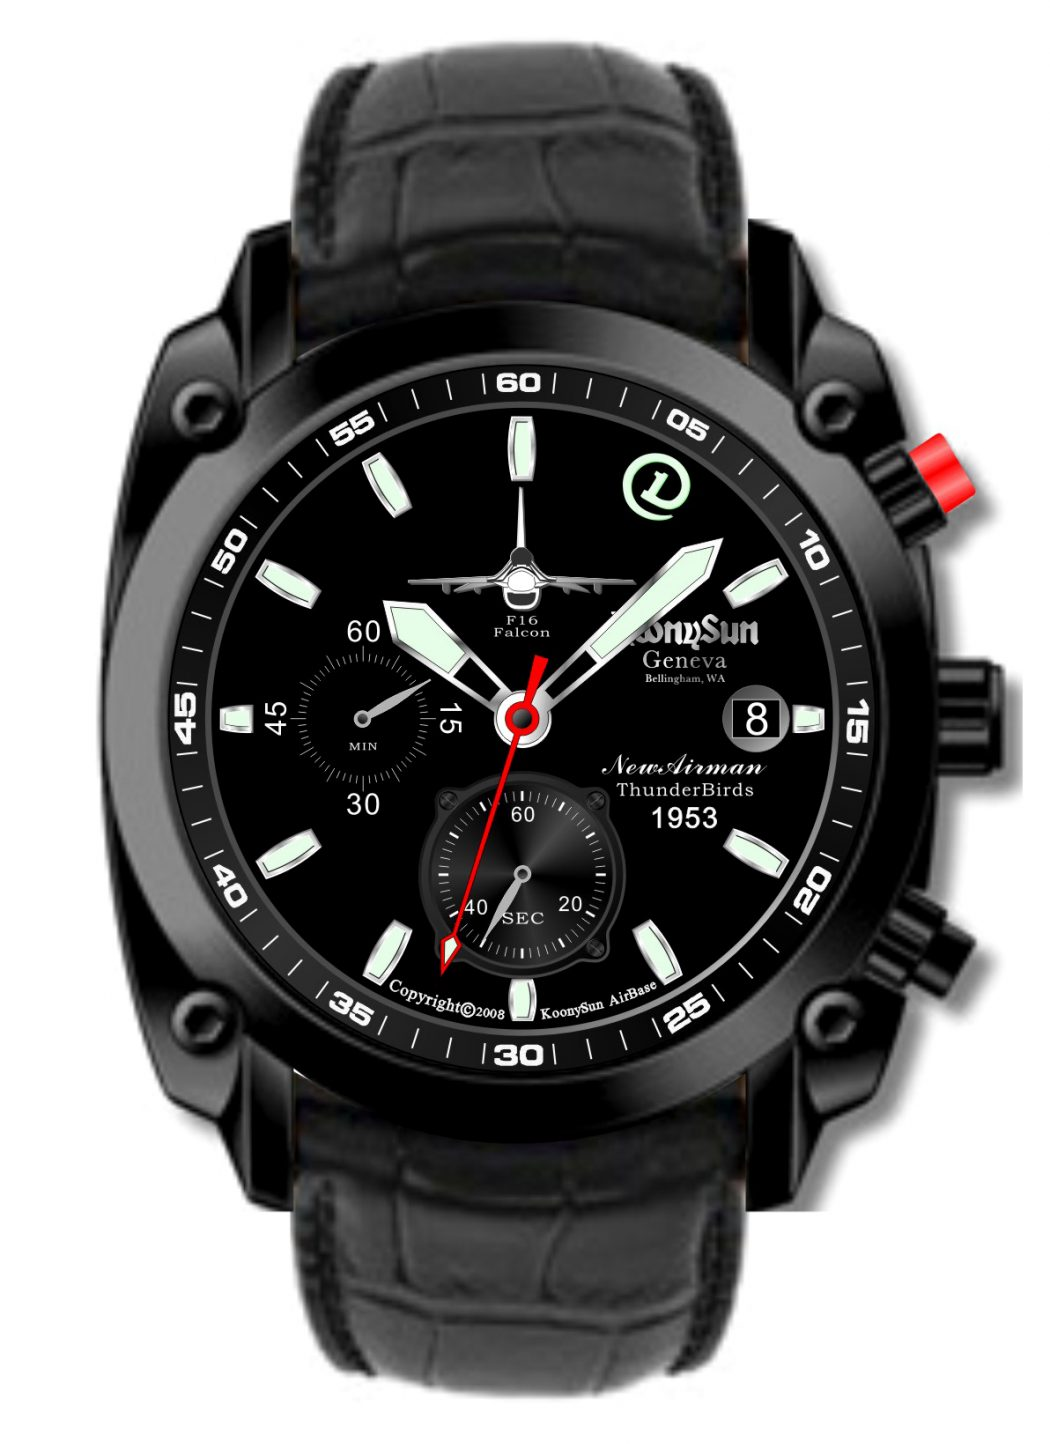 Military-Pilot-Watch-9045big Best 20 giveaways ideas for birthdays